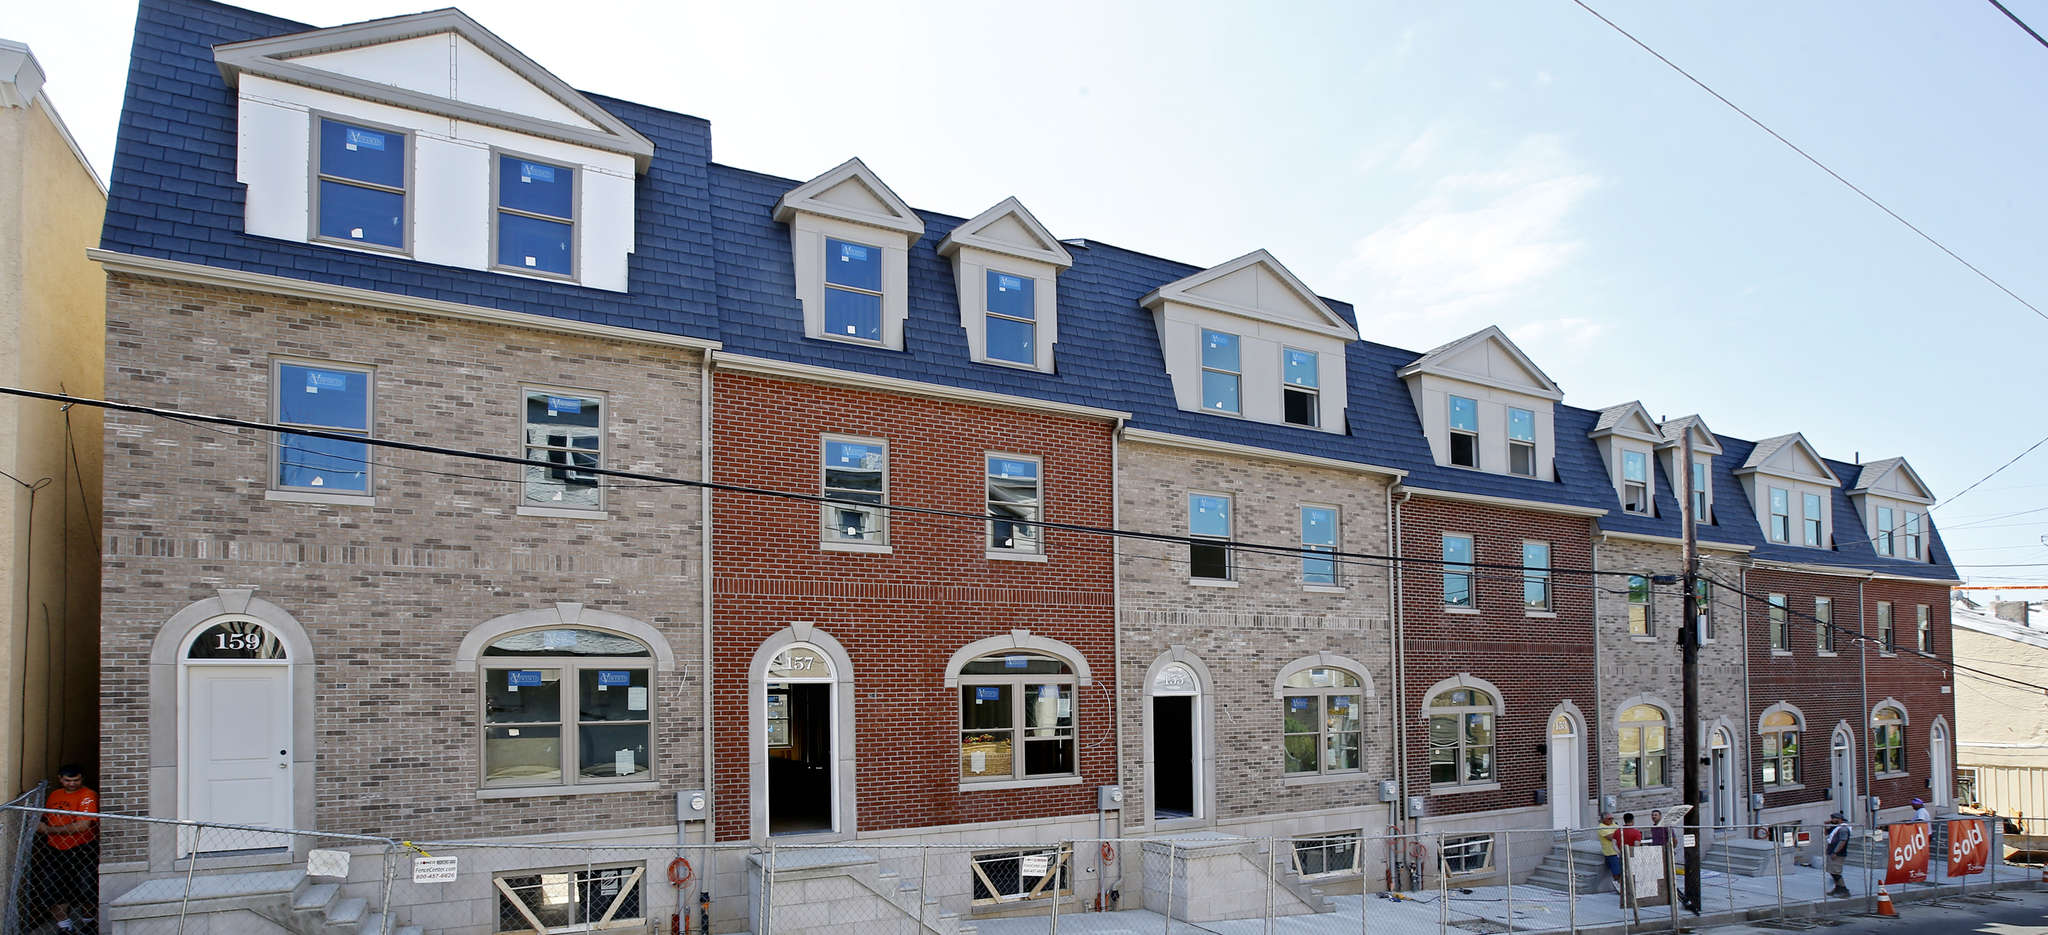 Six of the townhouses the group has built on the old St Lucy´s parking lot are on Green Lane, near St. Davids Street.